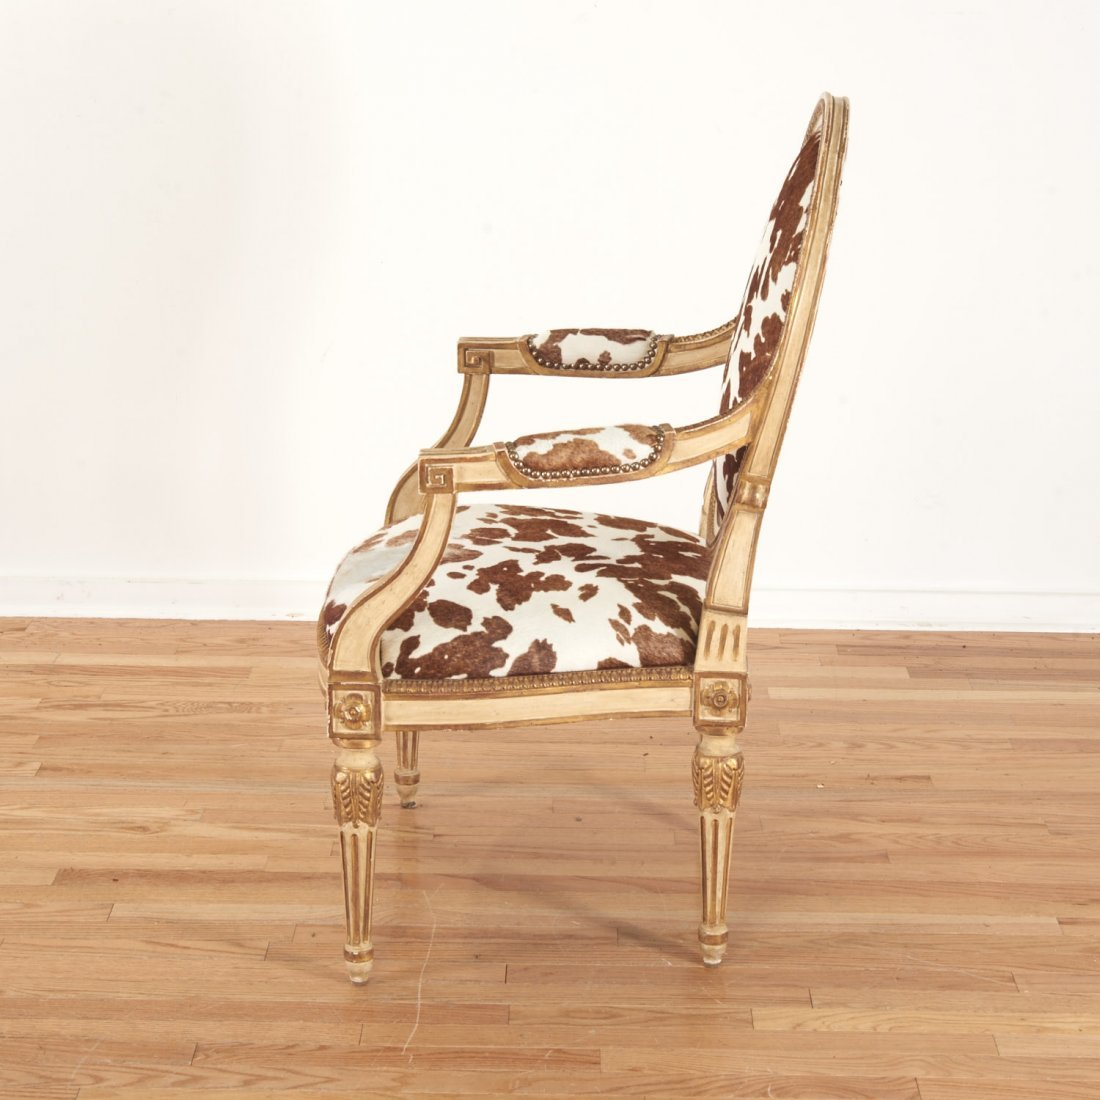 Louis XVI style cowhide fauteuil by Dennis & Leen - 7